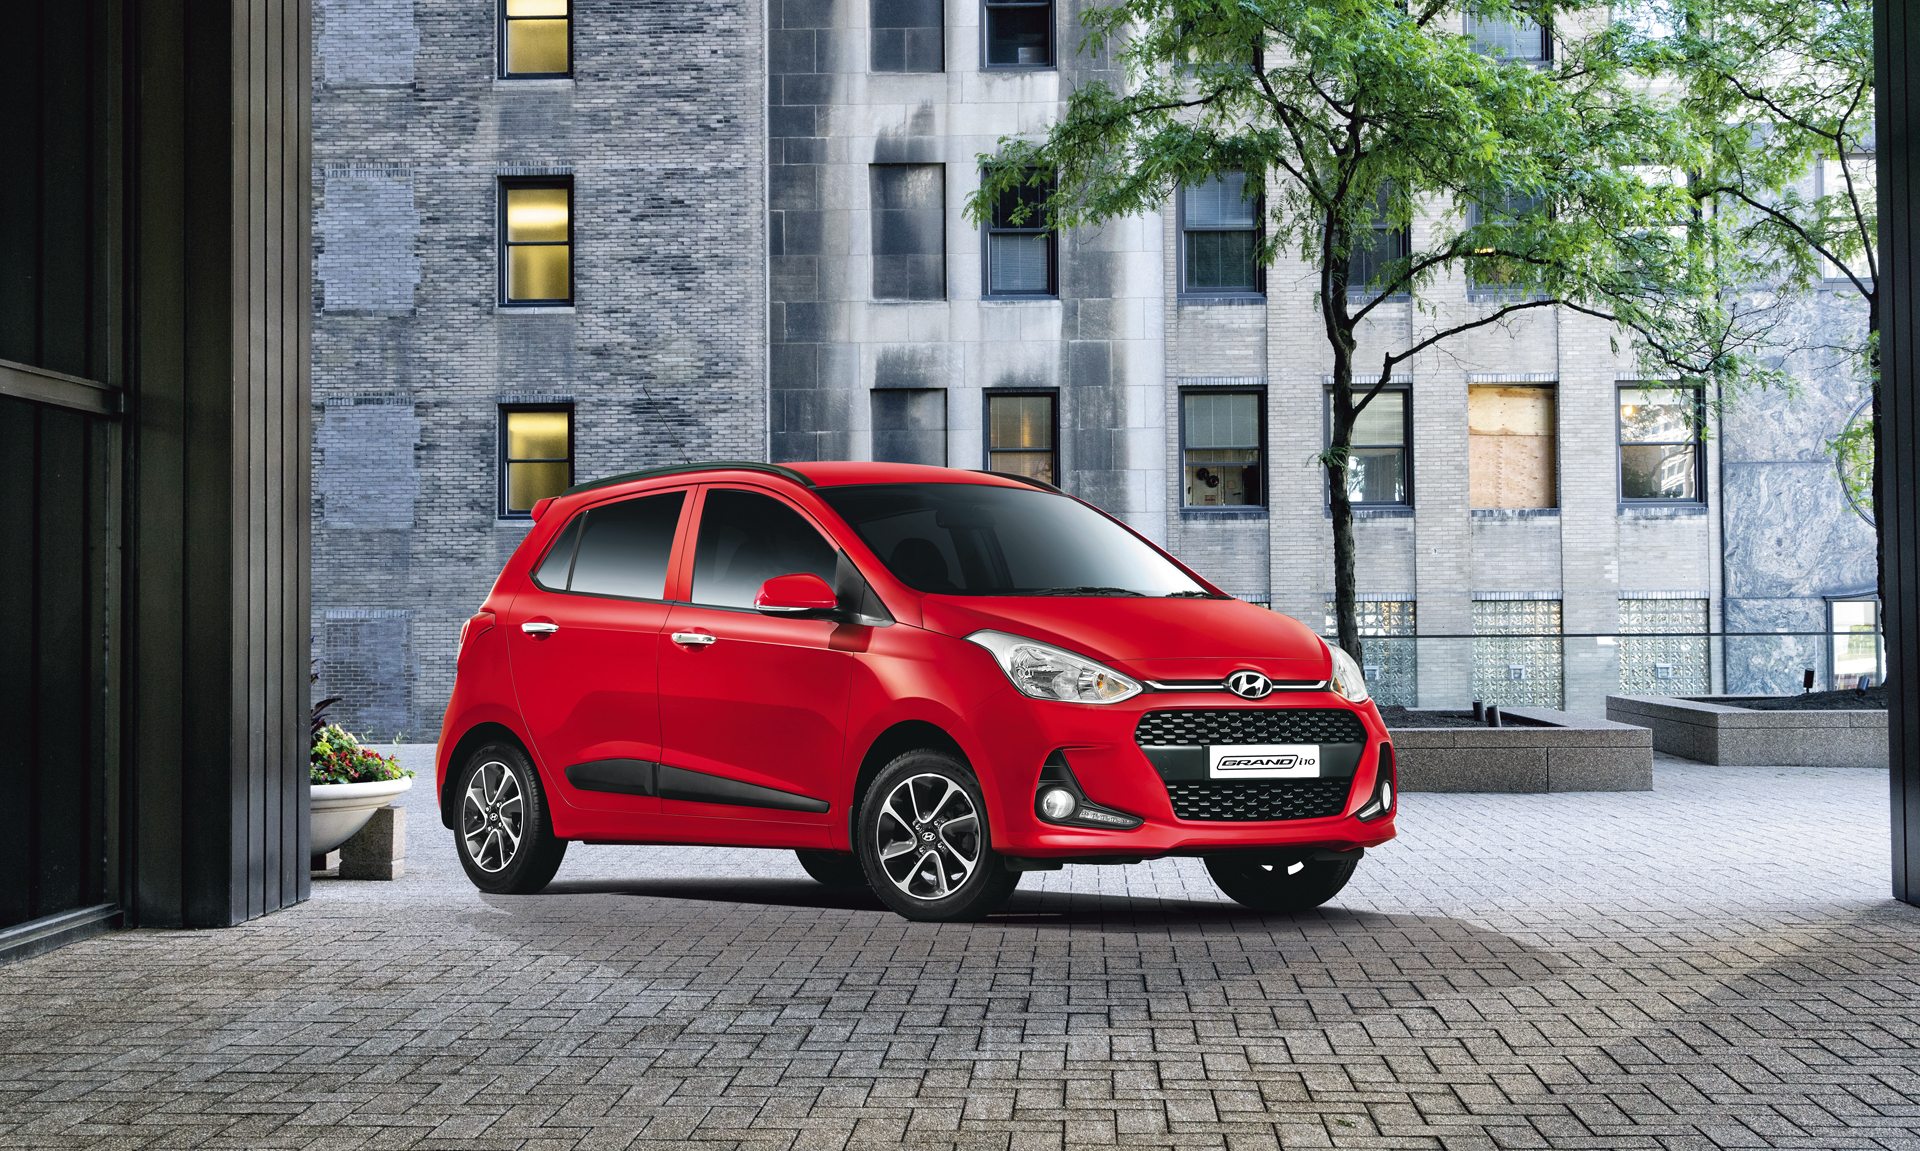 Buy Grand-i10 car from Modi Hyundai